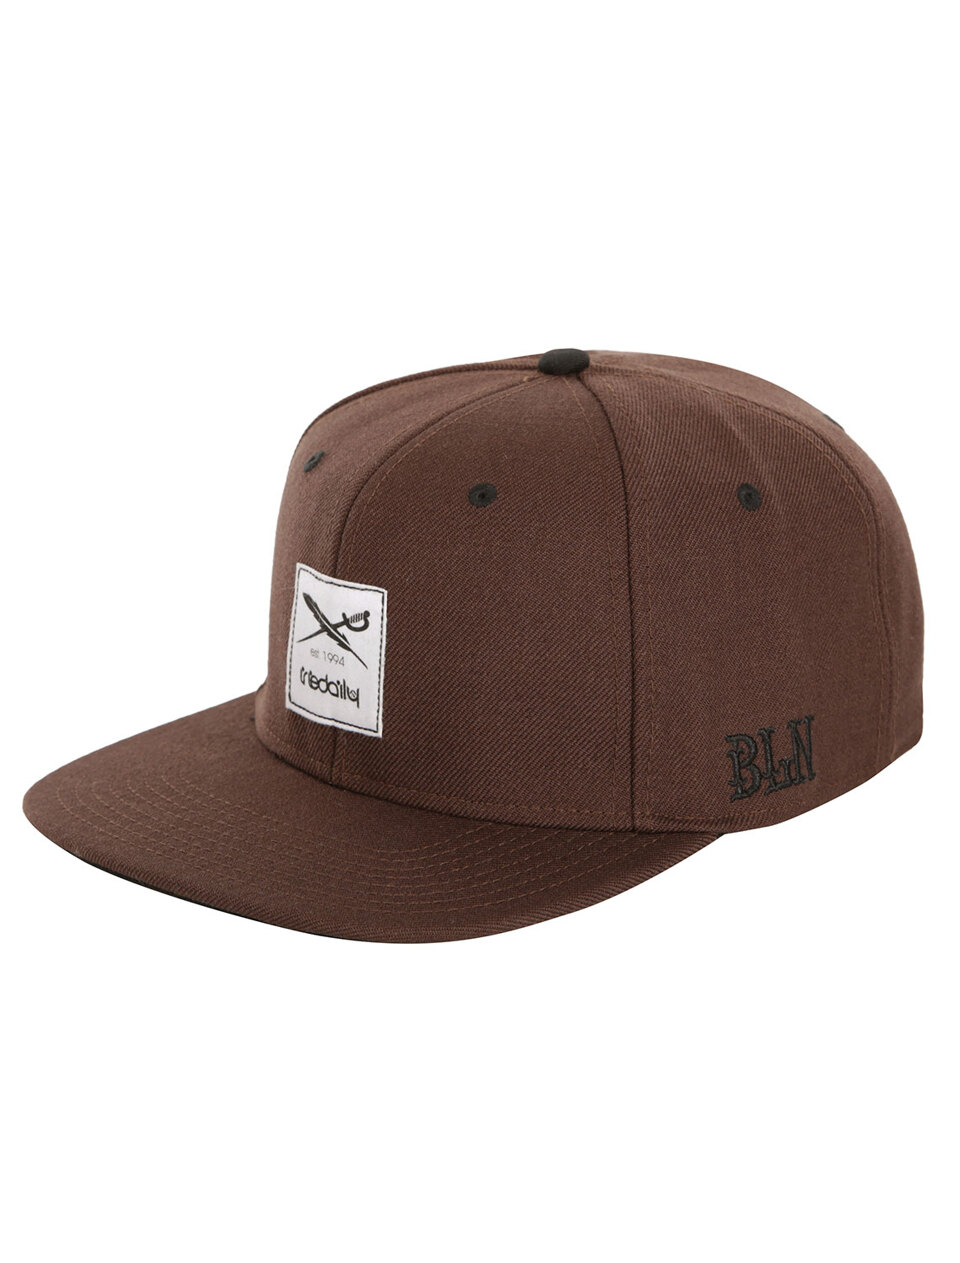 cf86bbe9afdfc9 Daily Flag Snapback [d brown]   shop official - IRIEDAILY